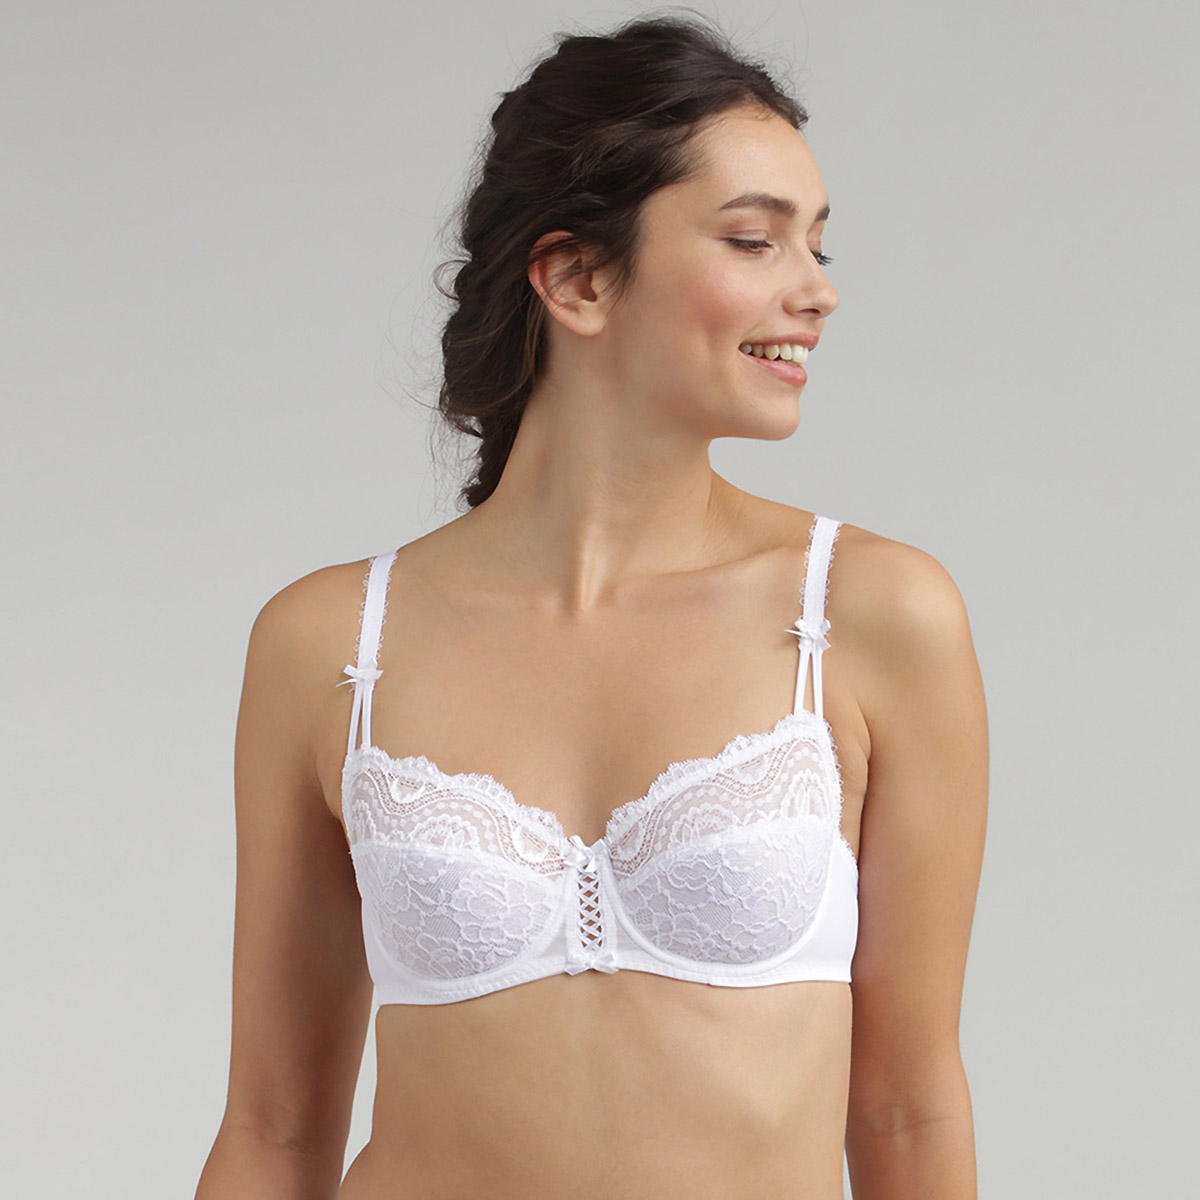 Balcony bra in white Flower Elegance, , PLAYTEX